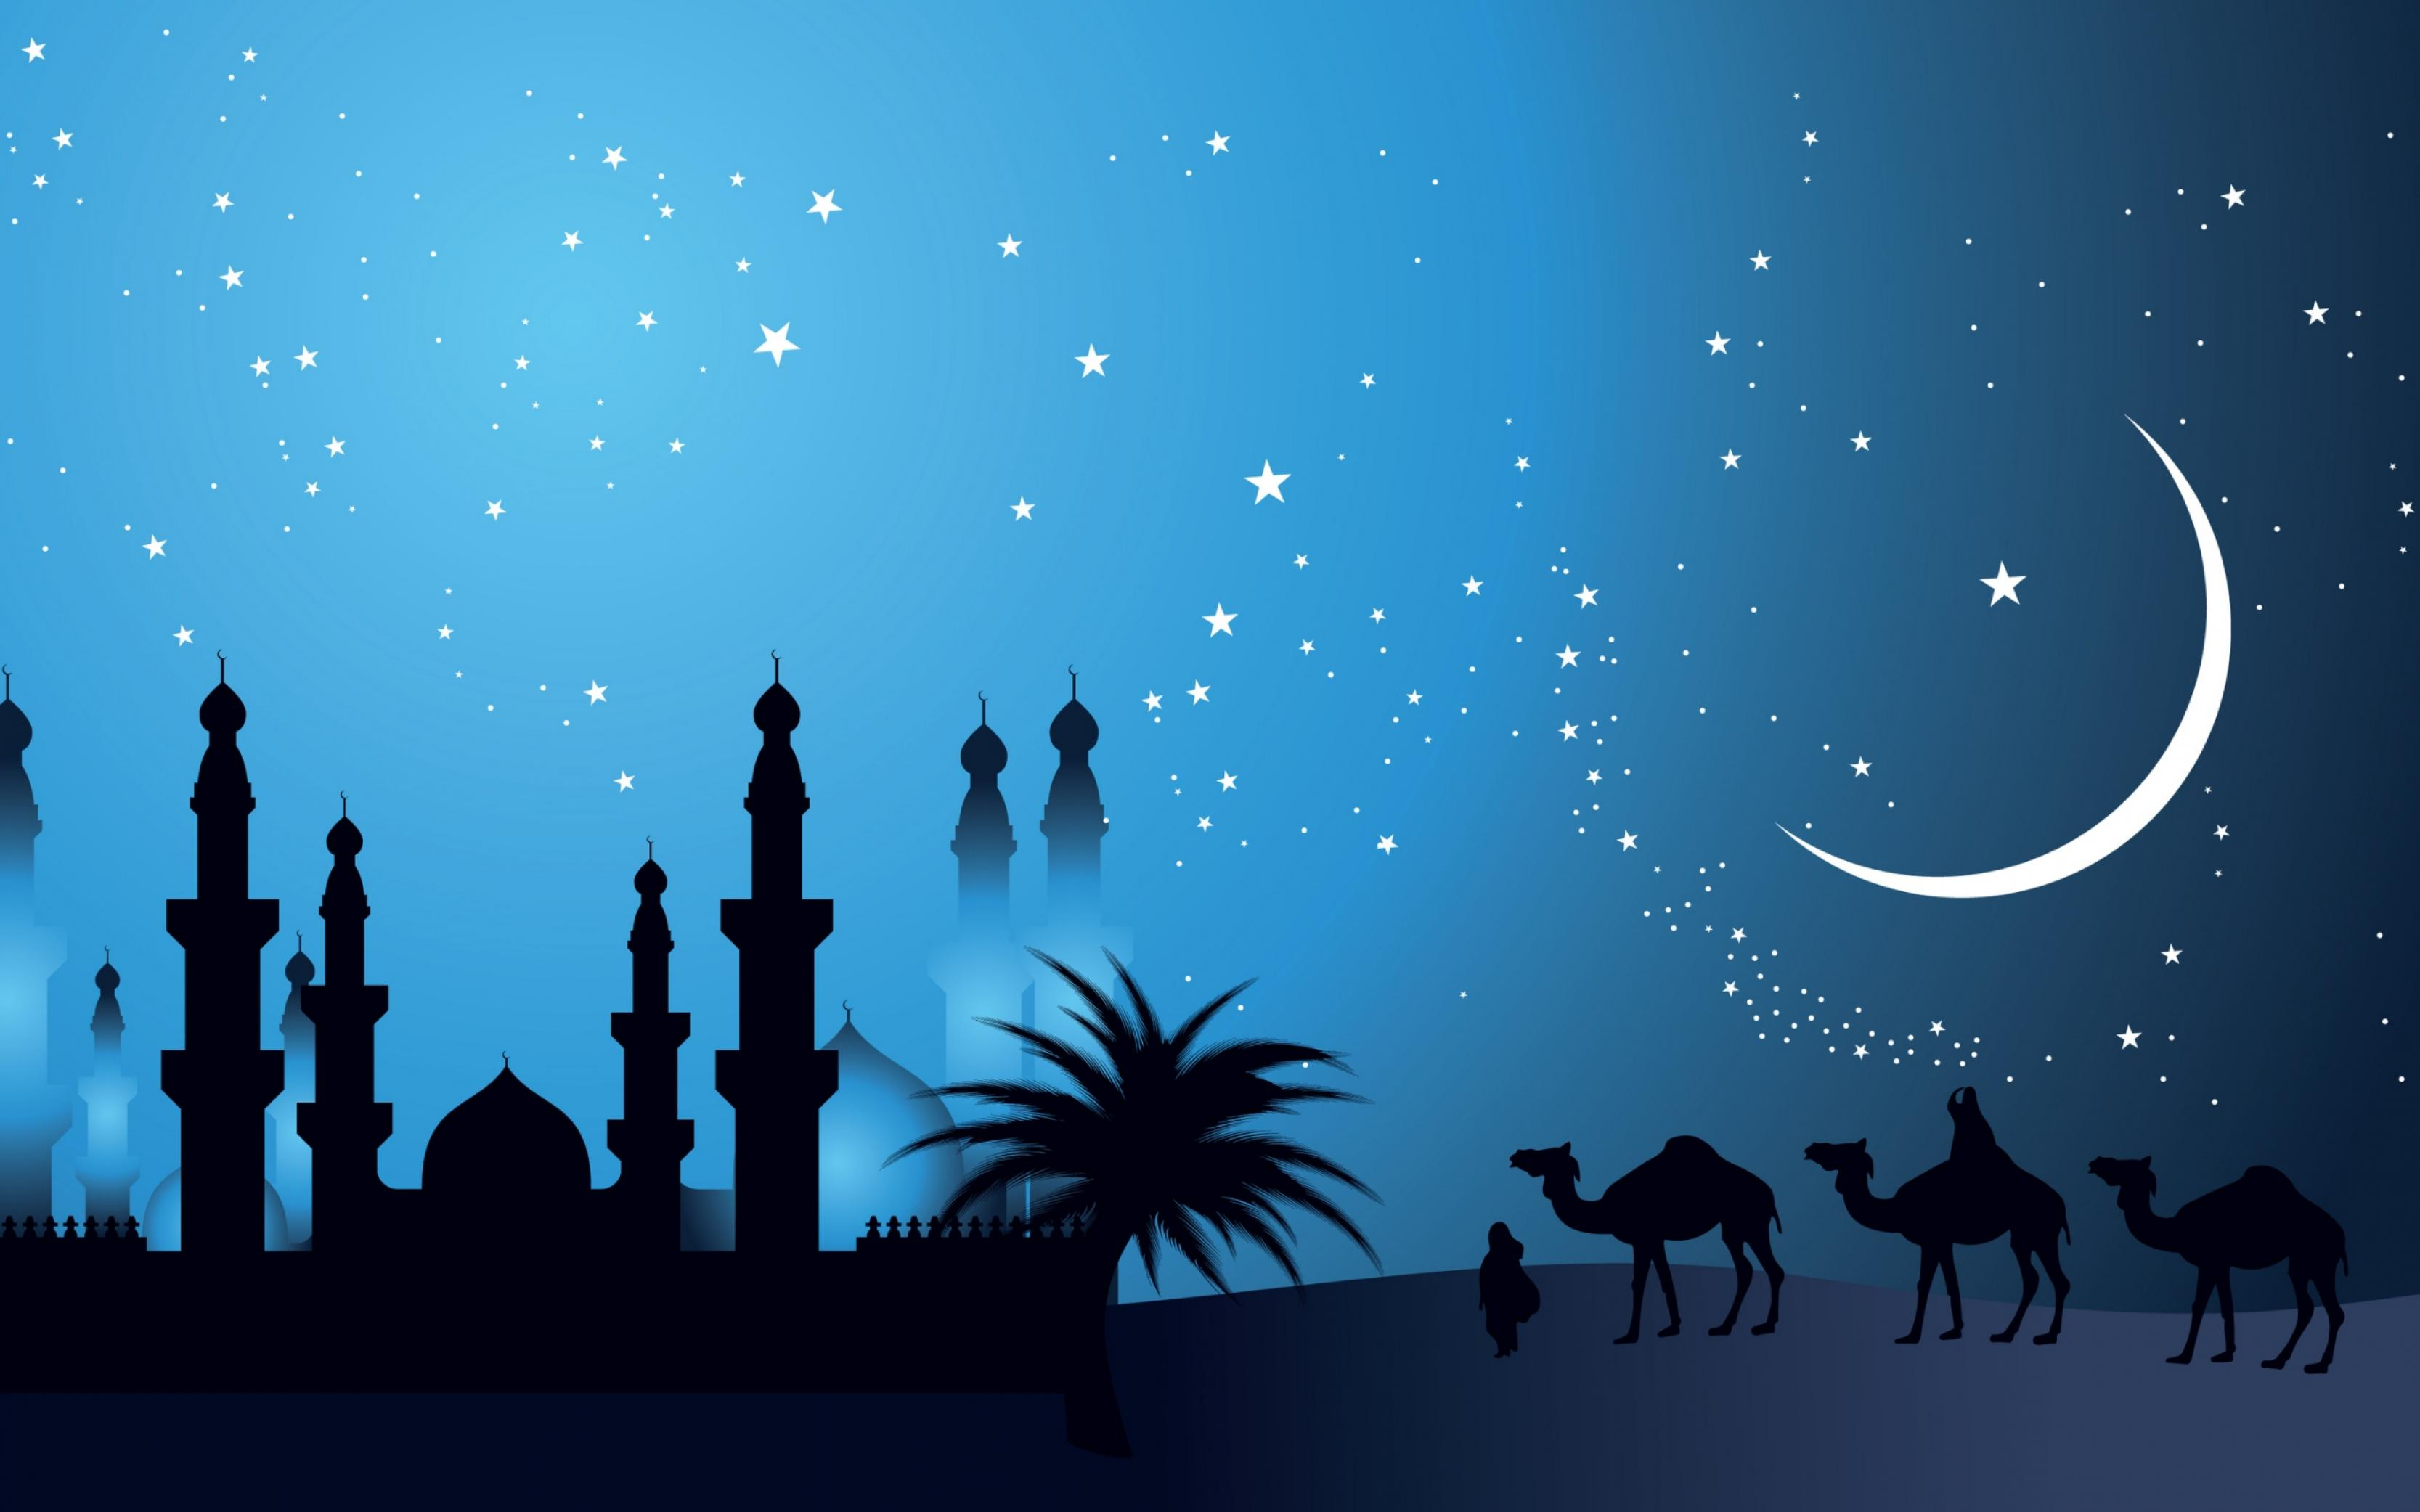 http://banco.az/sites/default/files/news/vector-ramadan-download-wallpapers-background.jpg